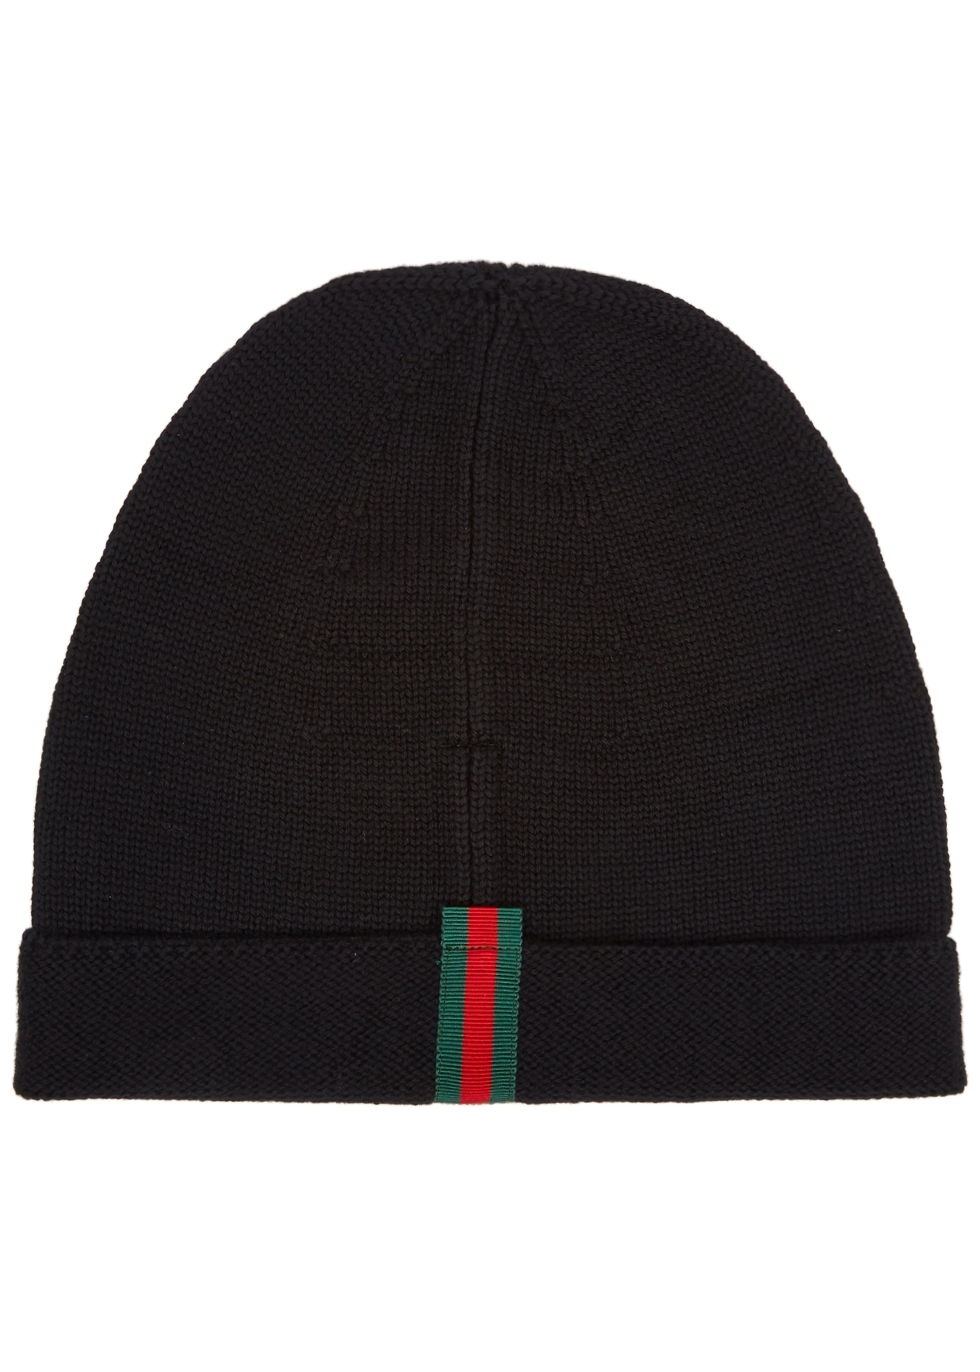 GUCCI BLACK FINE-KNIT WOOL BEANIE